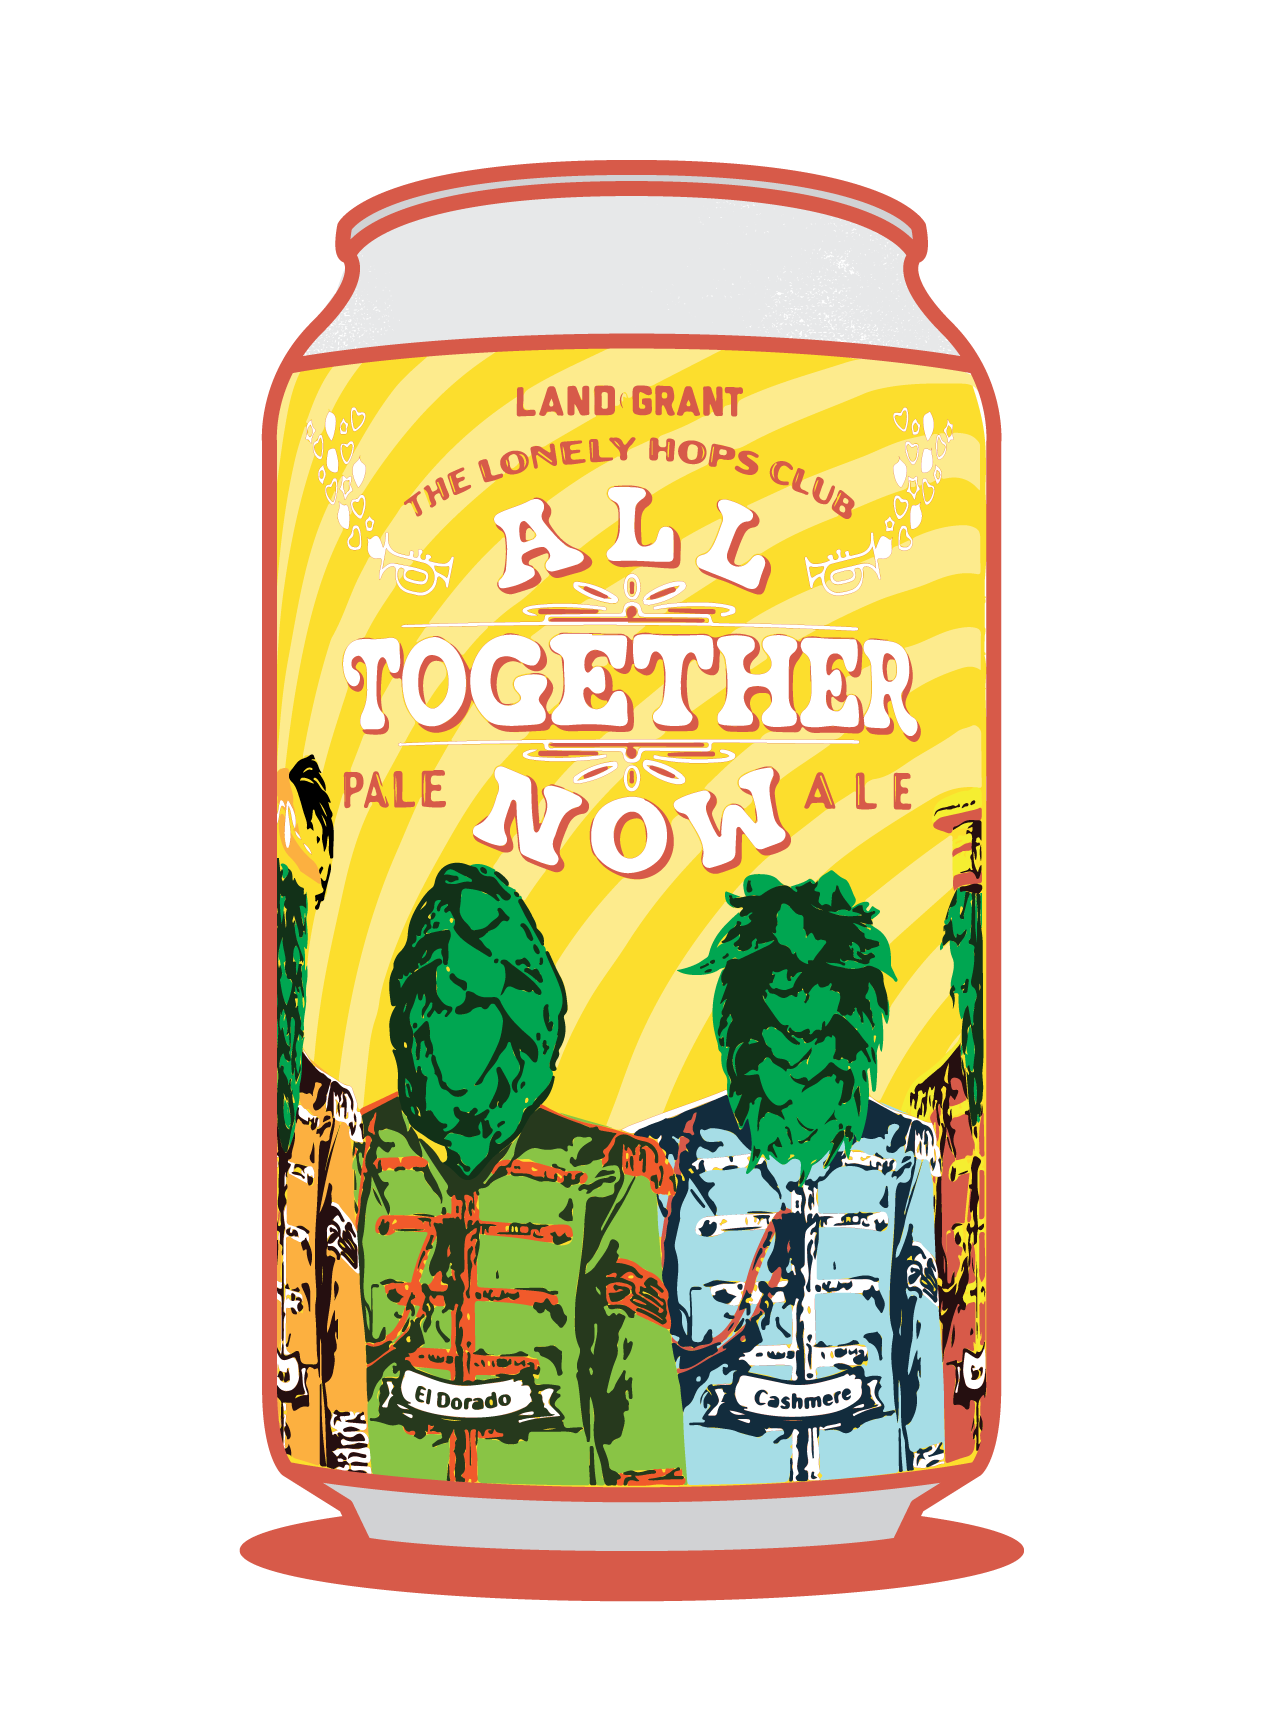 All Together Now Image